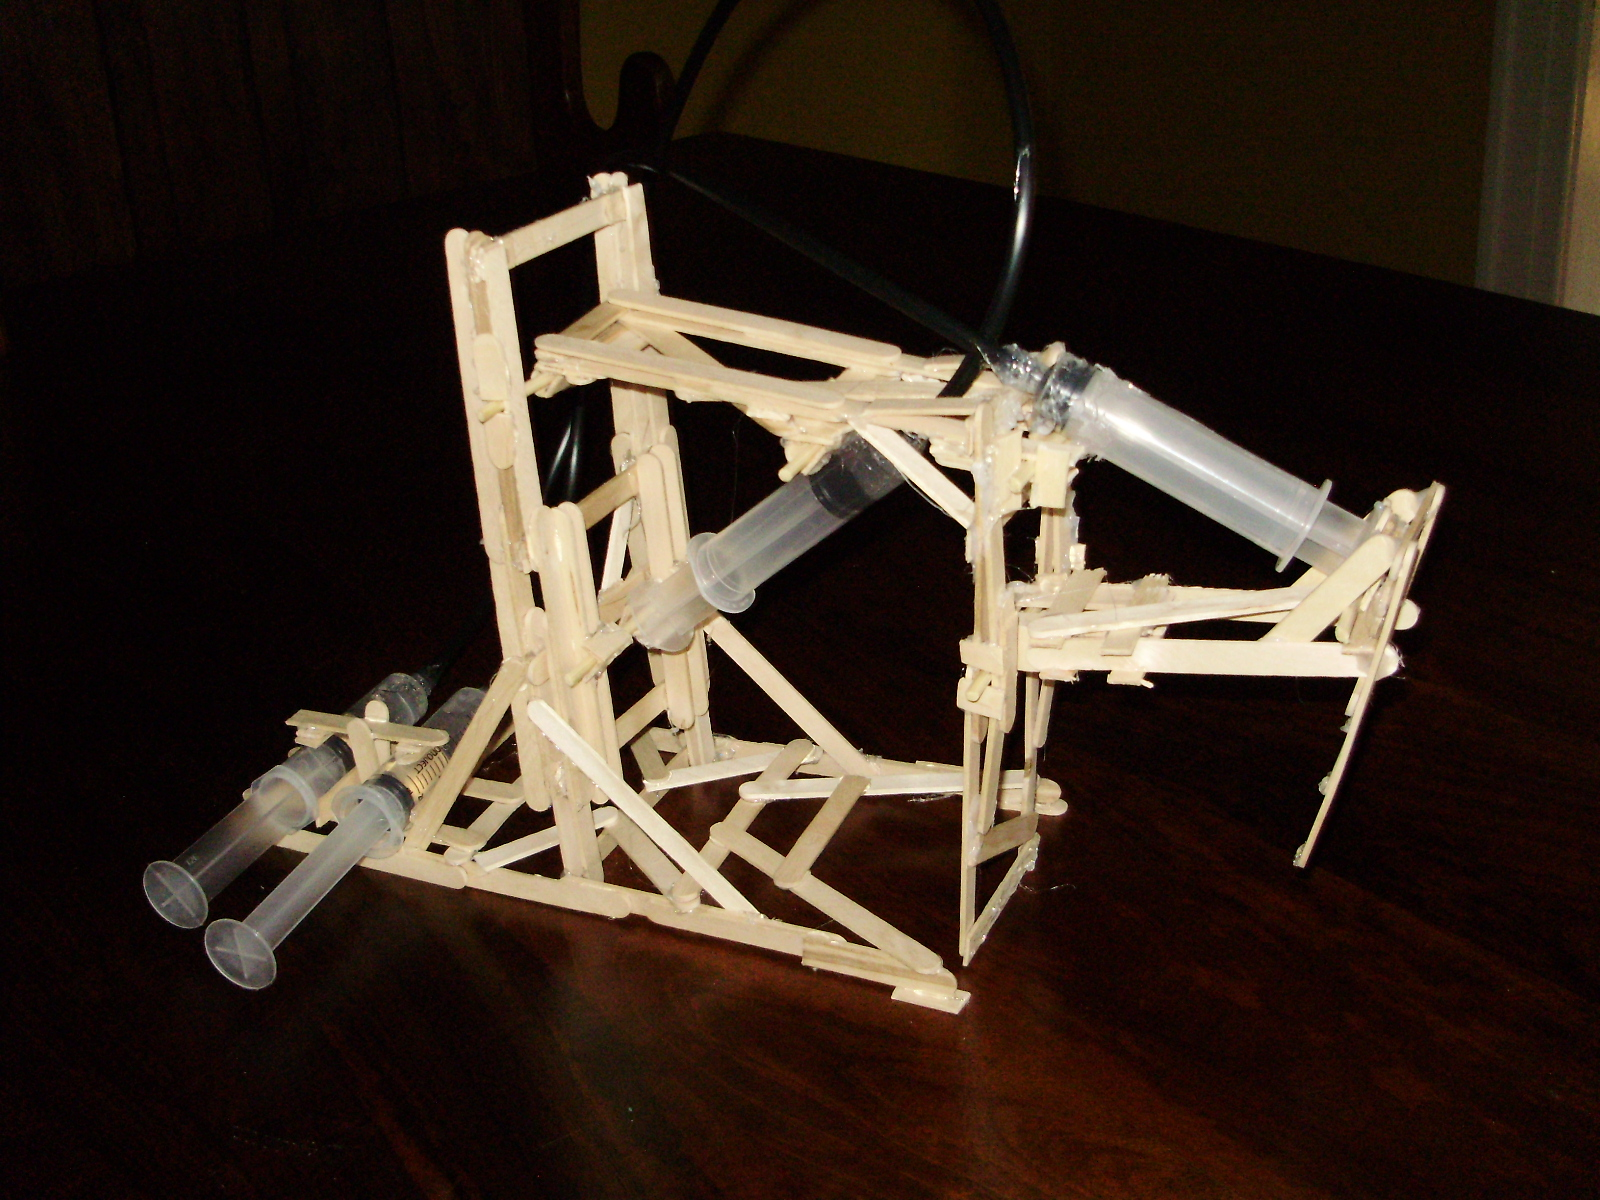 Hydraulic Arm With Popsicle Sticks : Buildits popsicle stick hydraulic arm